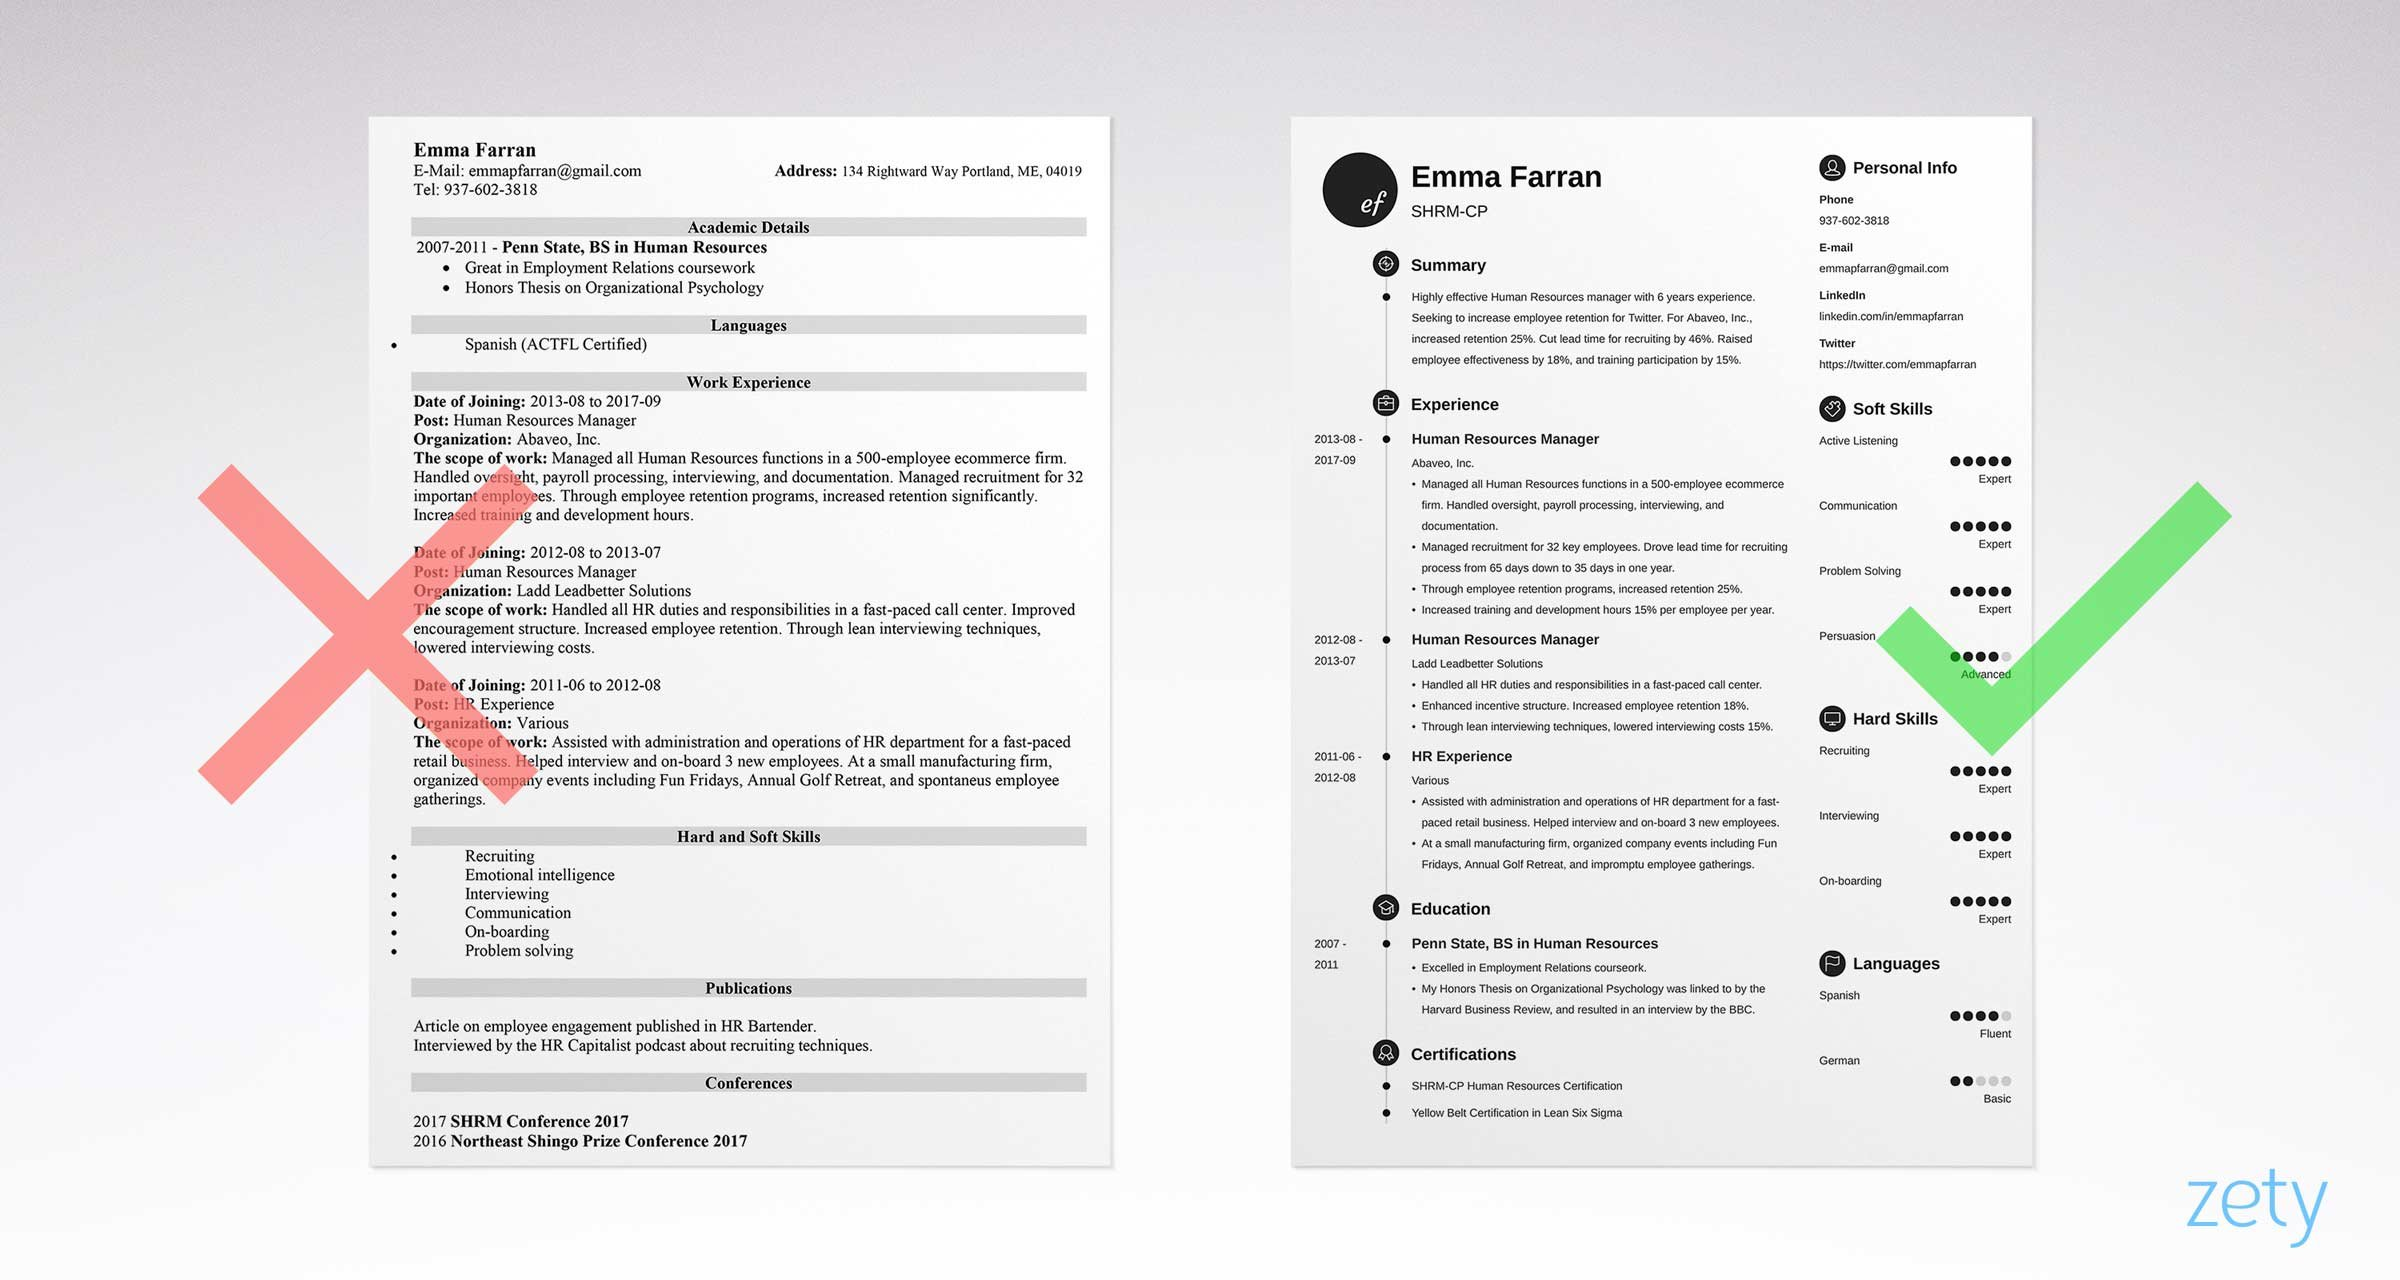 infographic resume example of visual resume improvement - Infographic Resume Templates